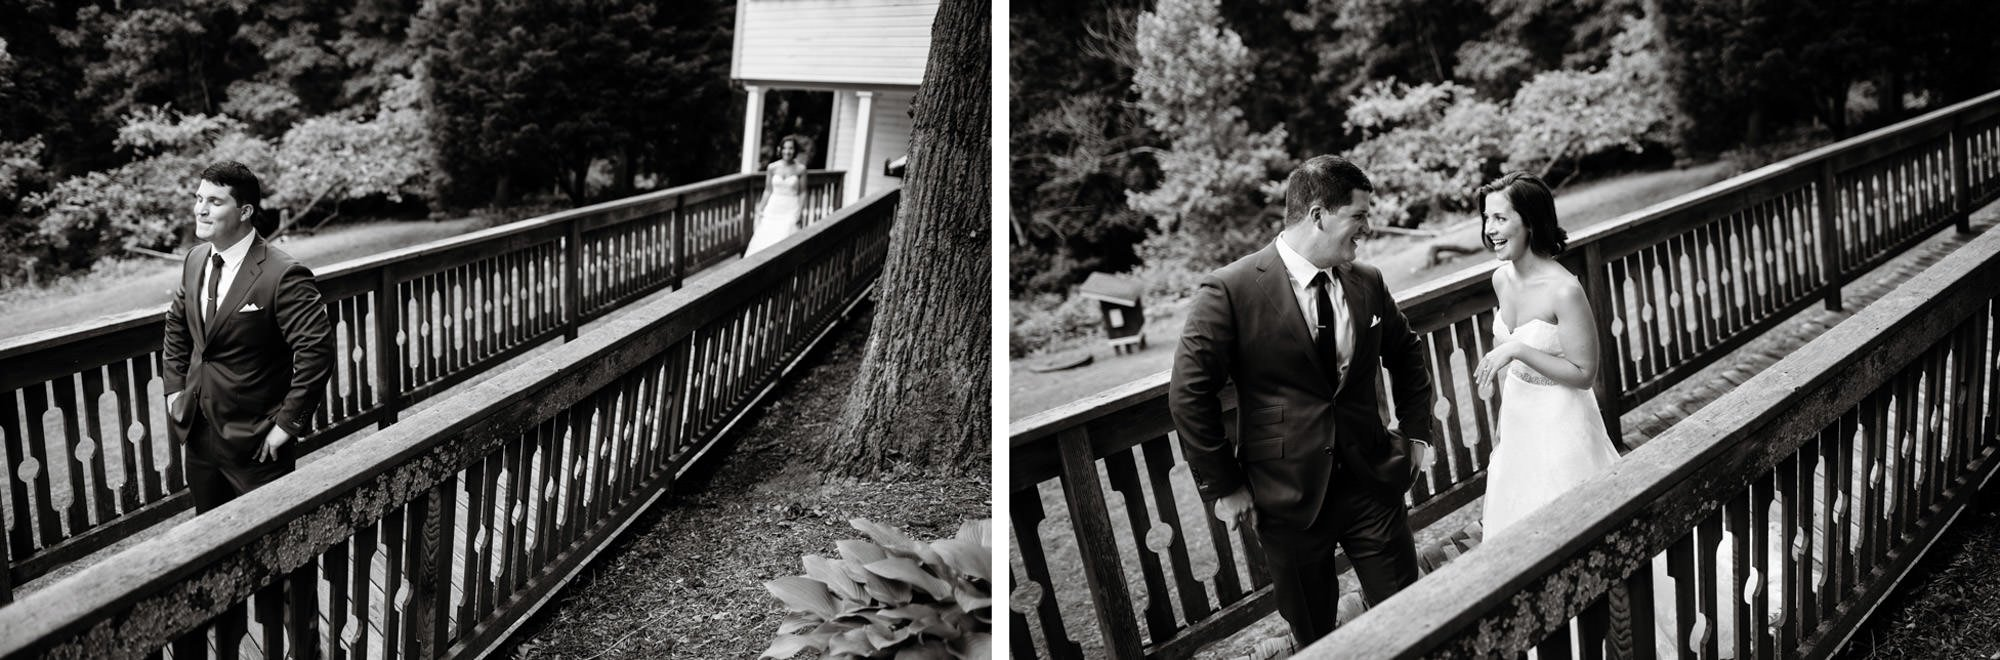 The couple shares their first look.